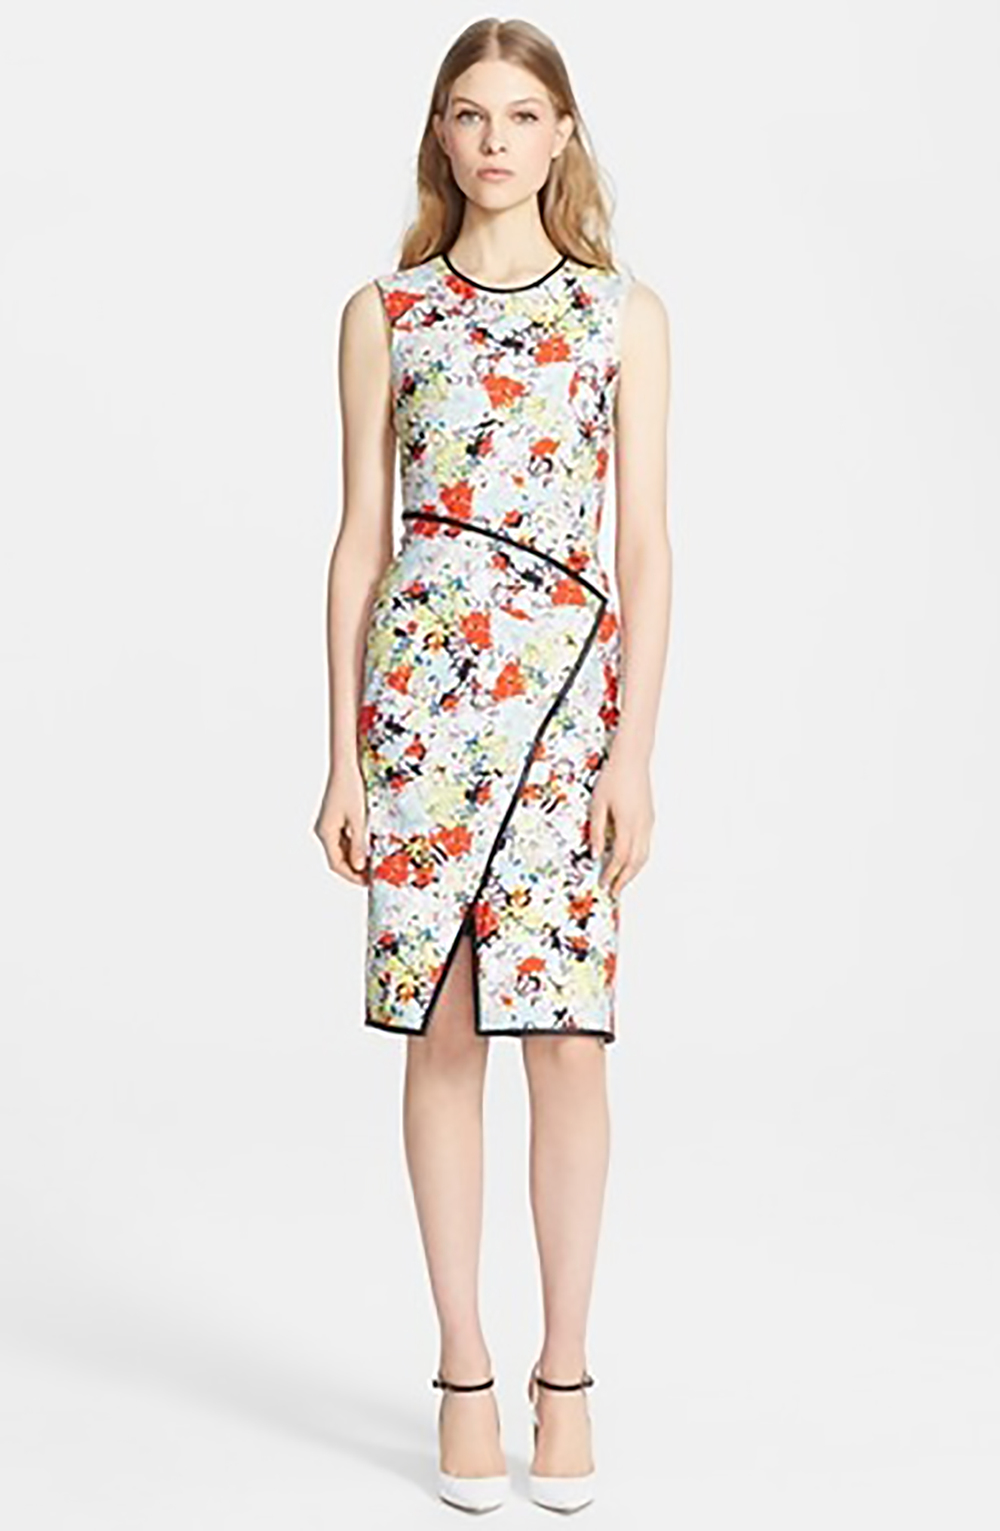 nordstrom erdem josete piped floral print dress sheath dress 1500.jpg